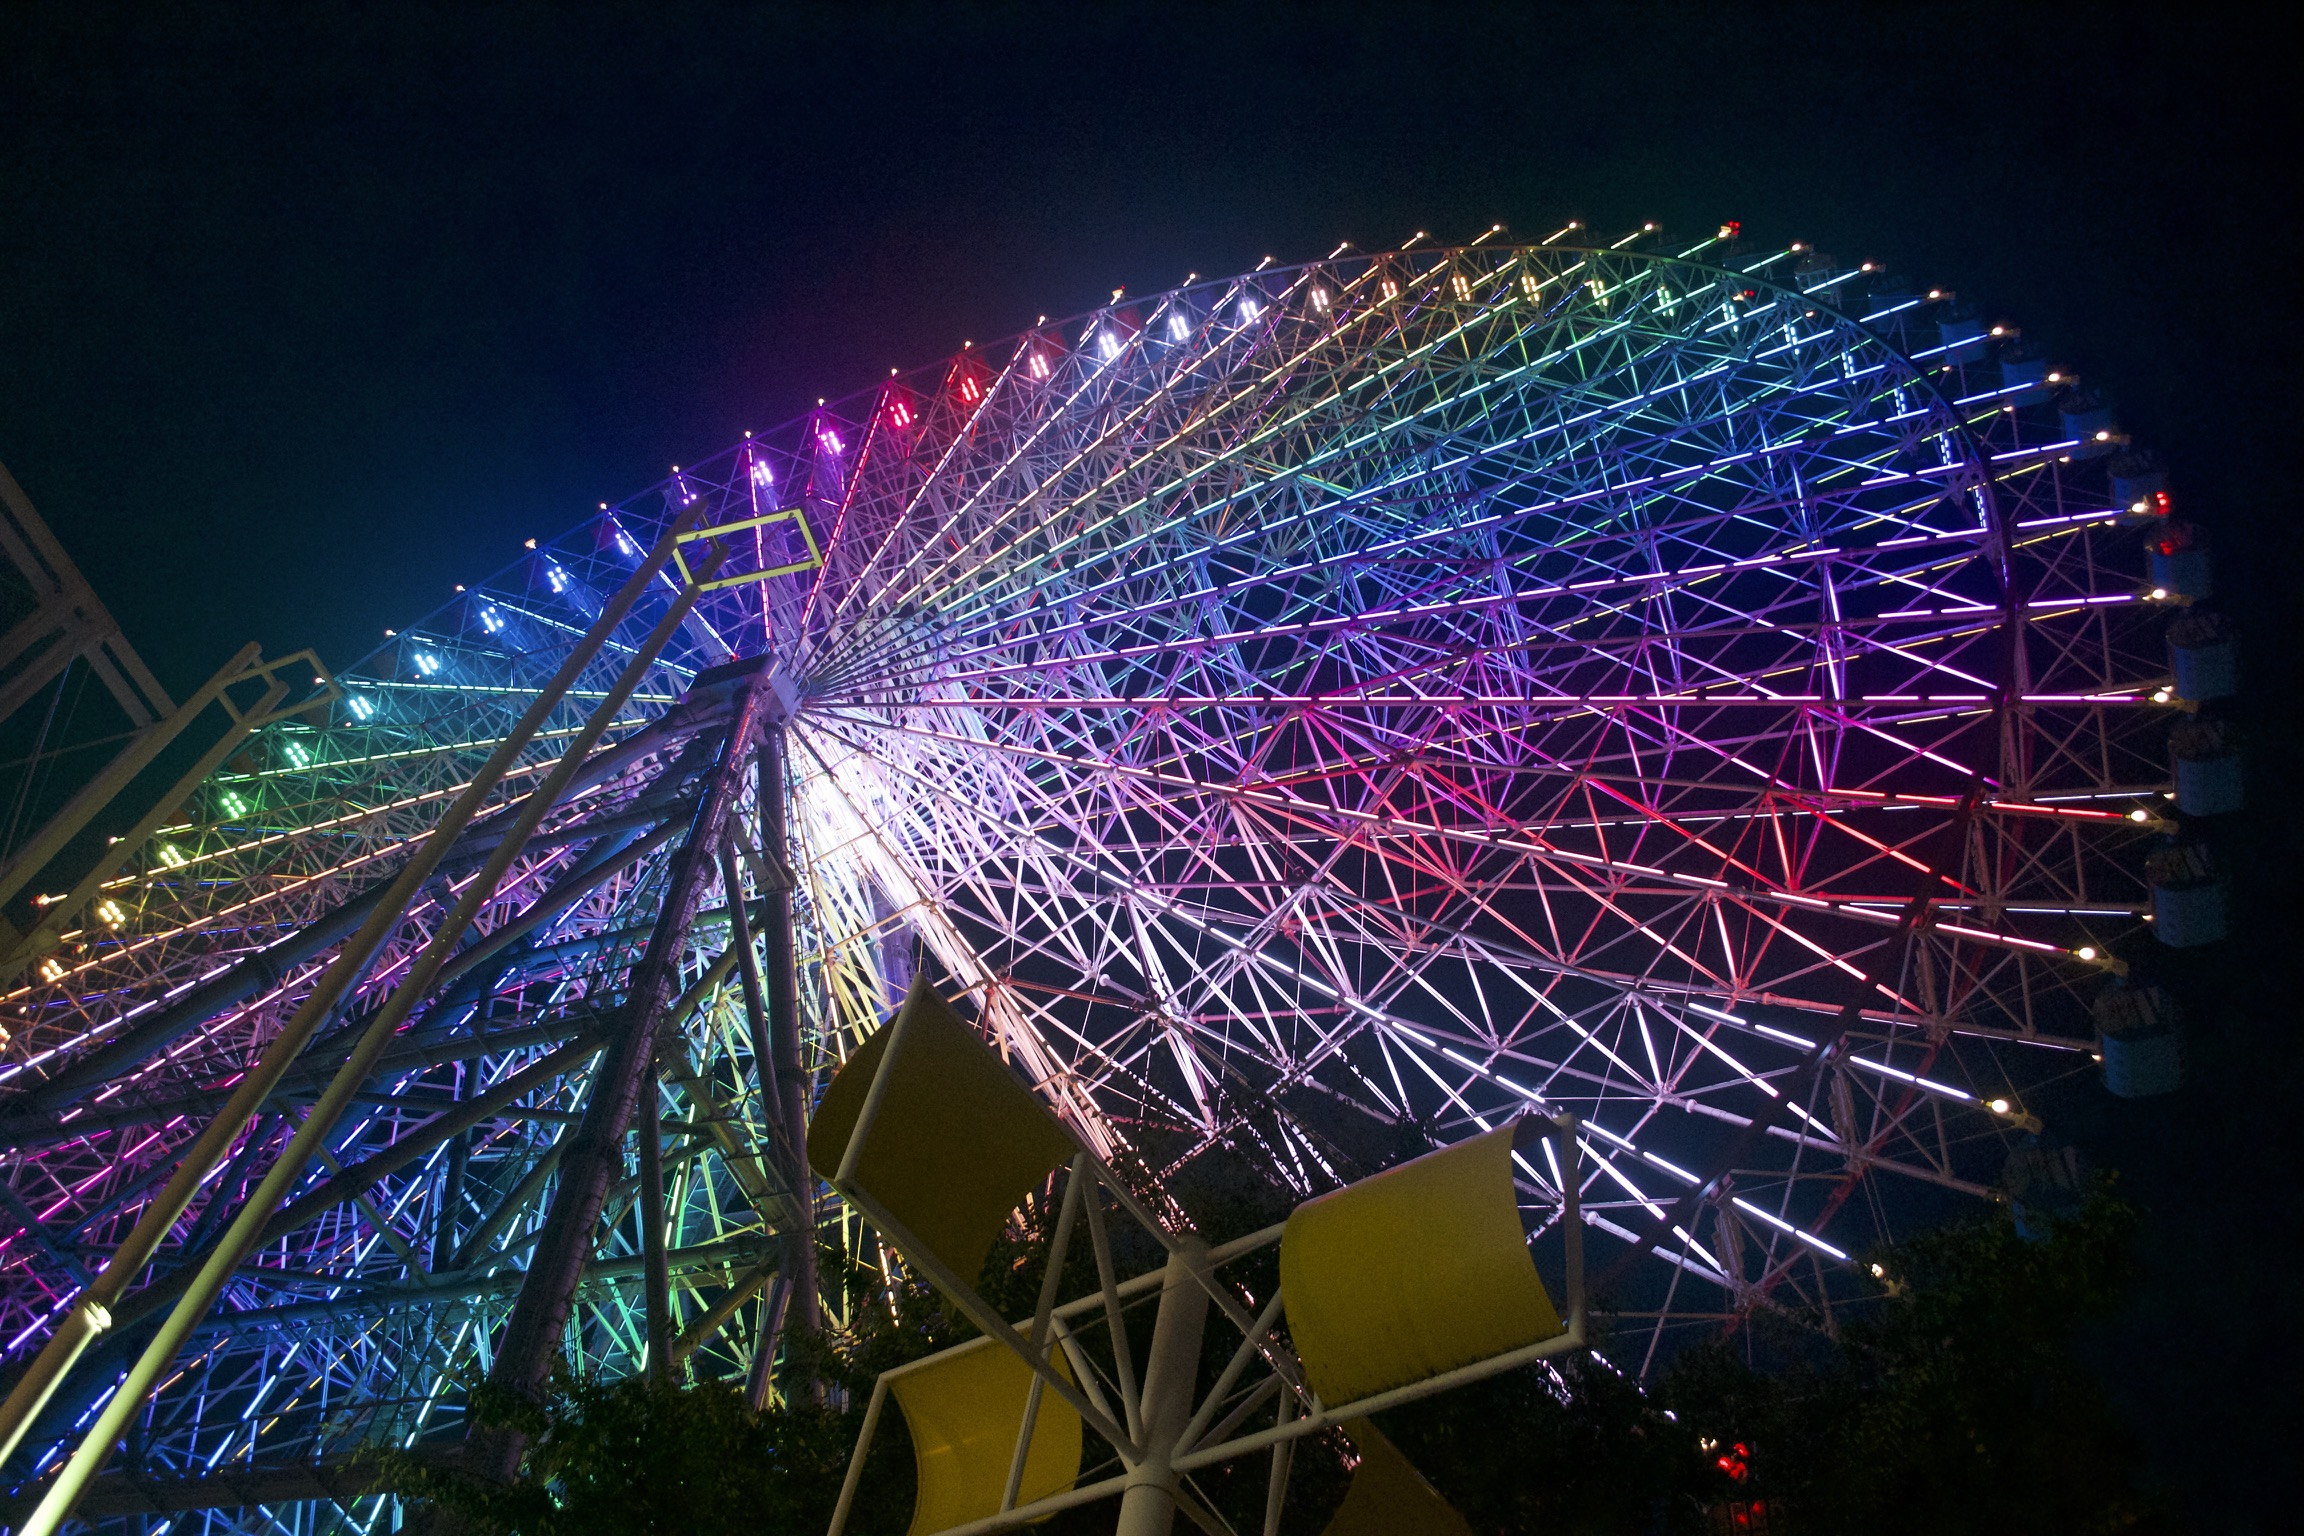 A ferris wheel is illuminated with a rainbow of colors.